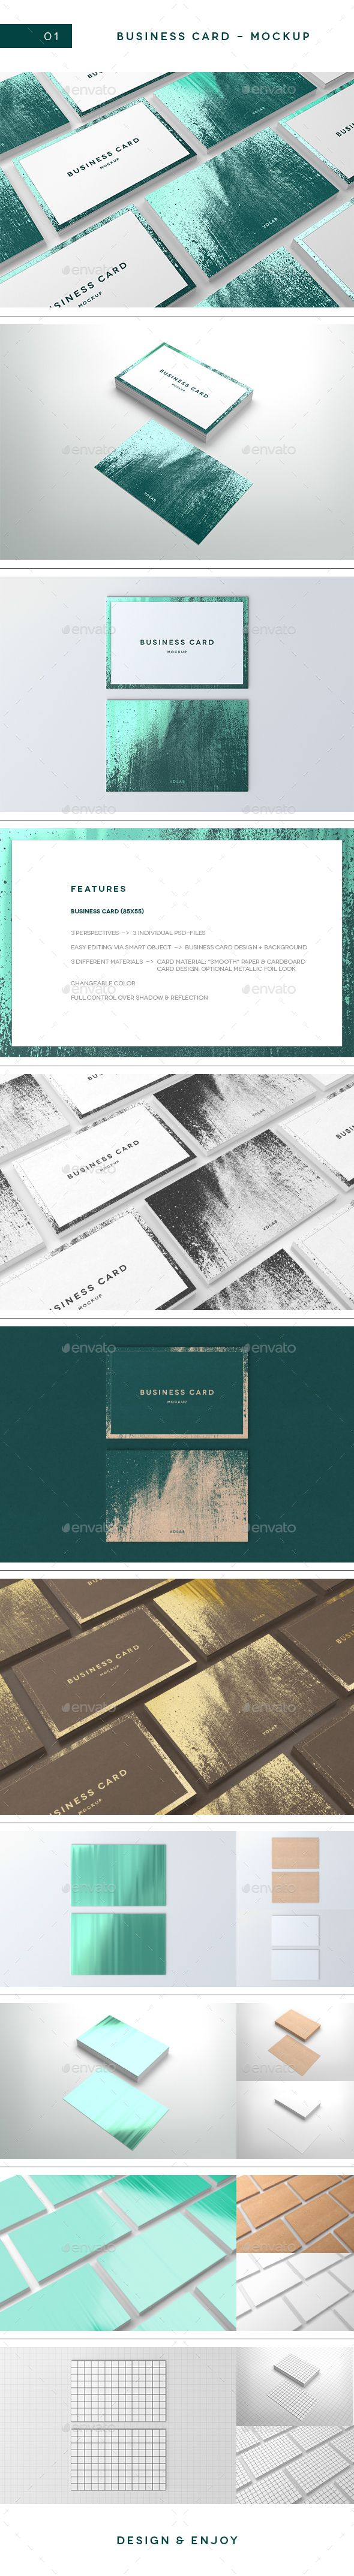 business card mockup business cards templates